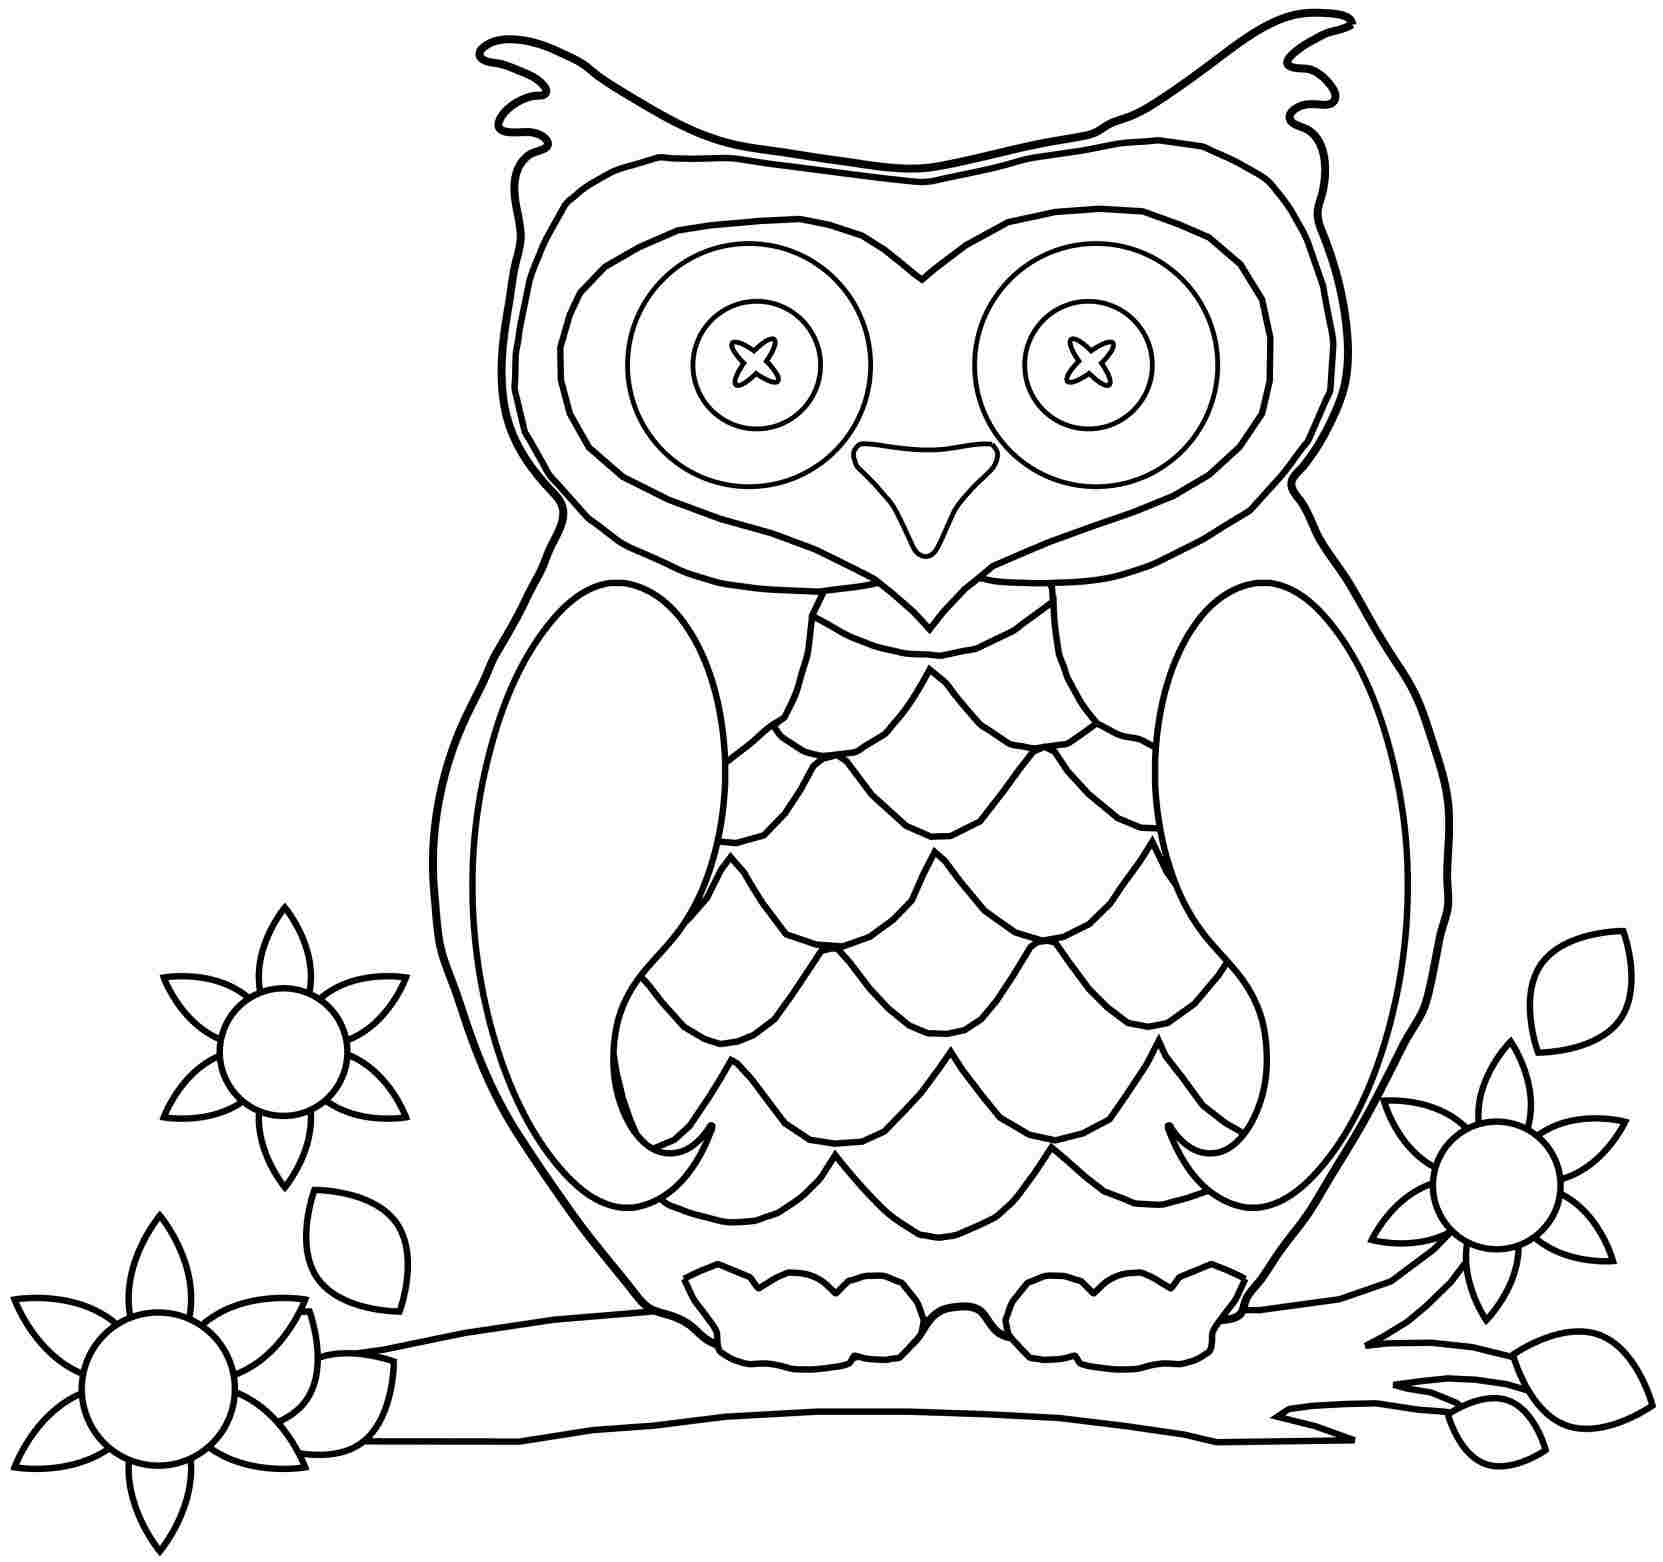 printable owl coloring pages owl coloring pages to print only coloring pages